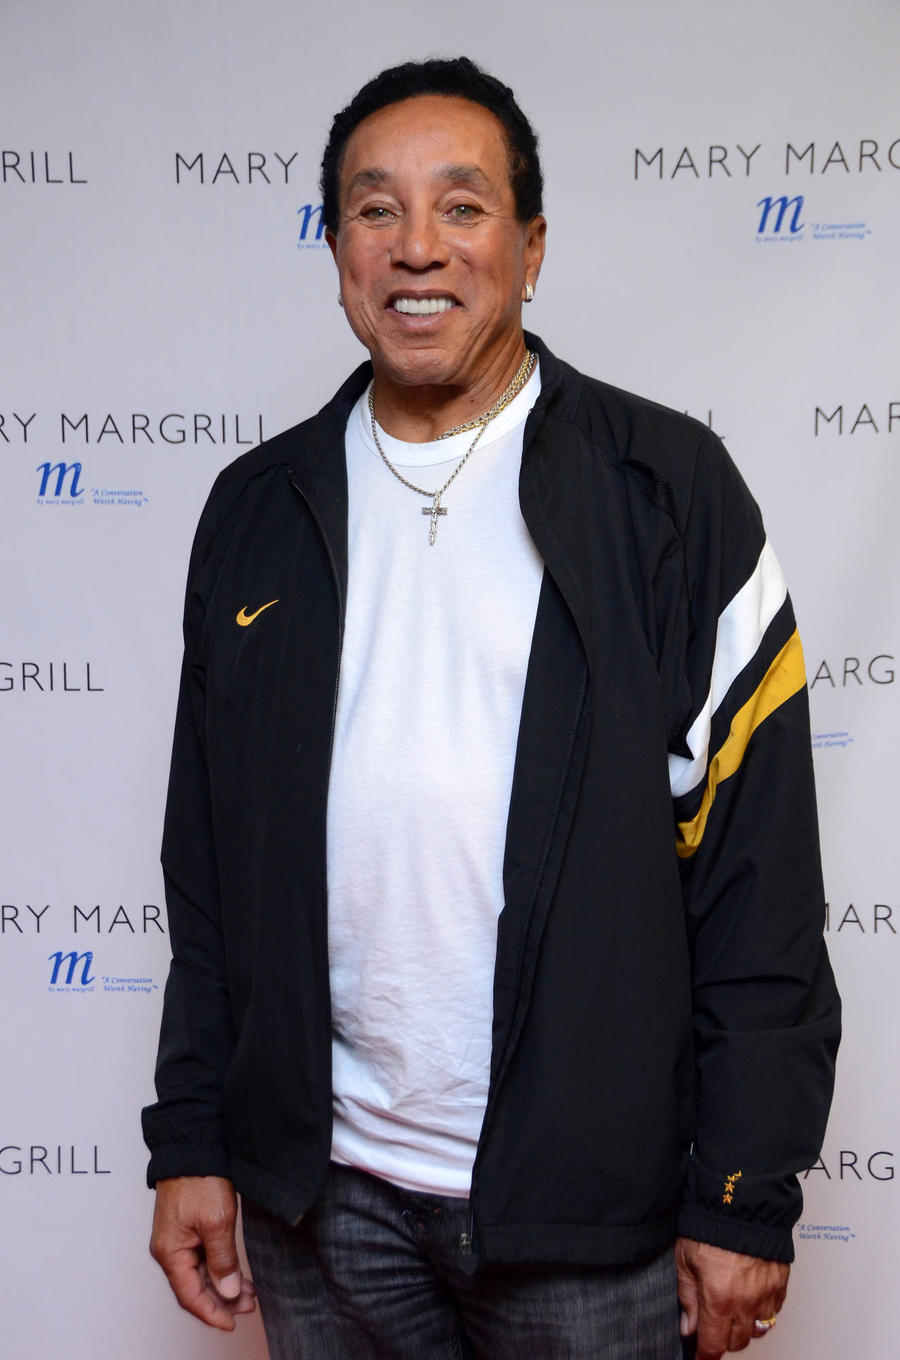 Smokey Robinson: 'I Thought Marvin Gaye's Death Was April Fool's Day Hoax'